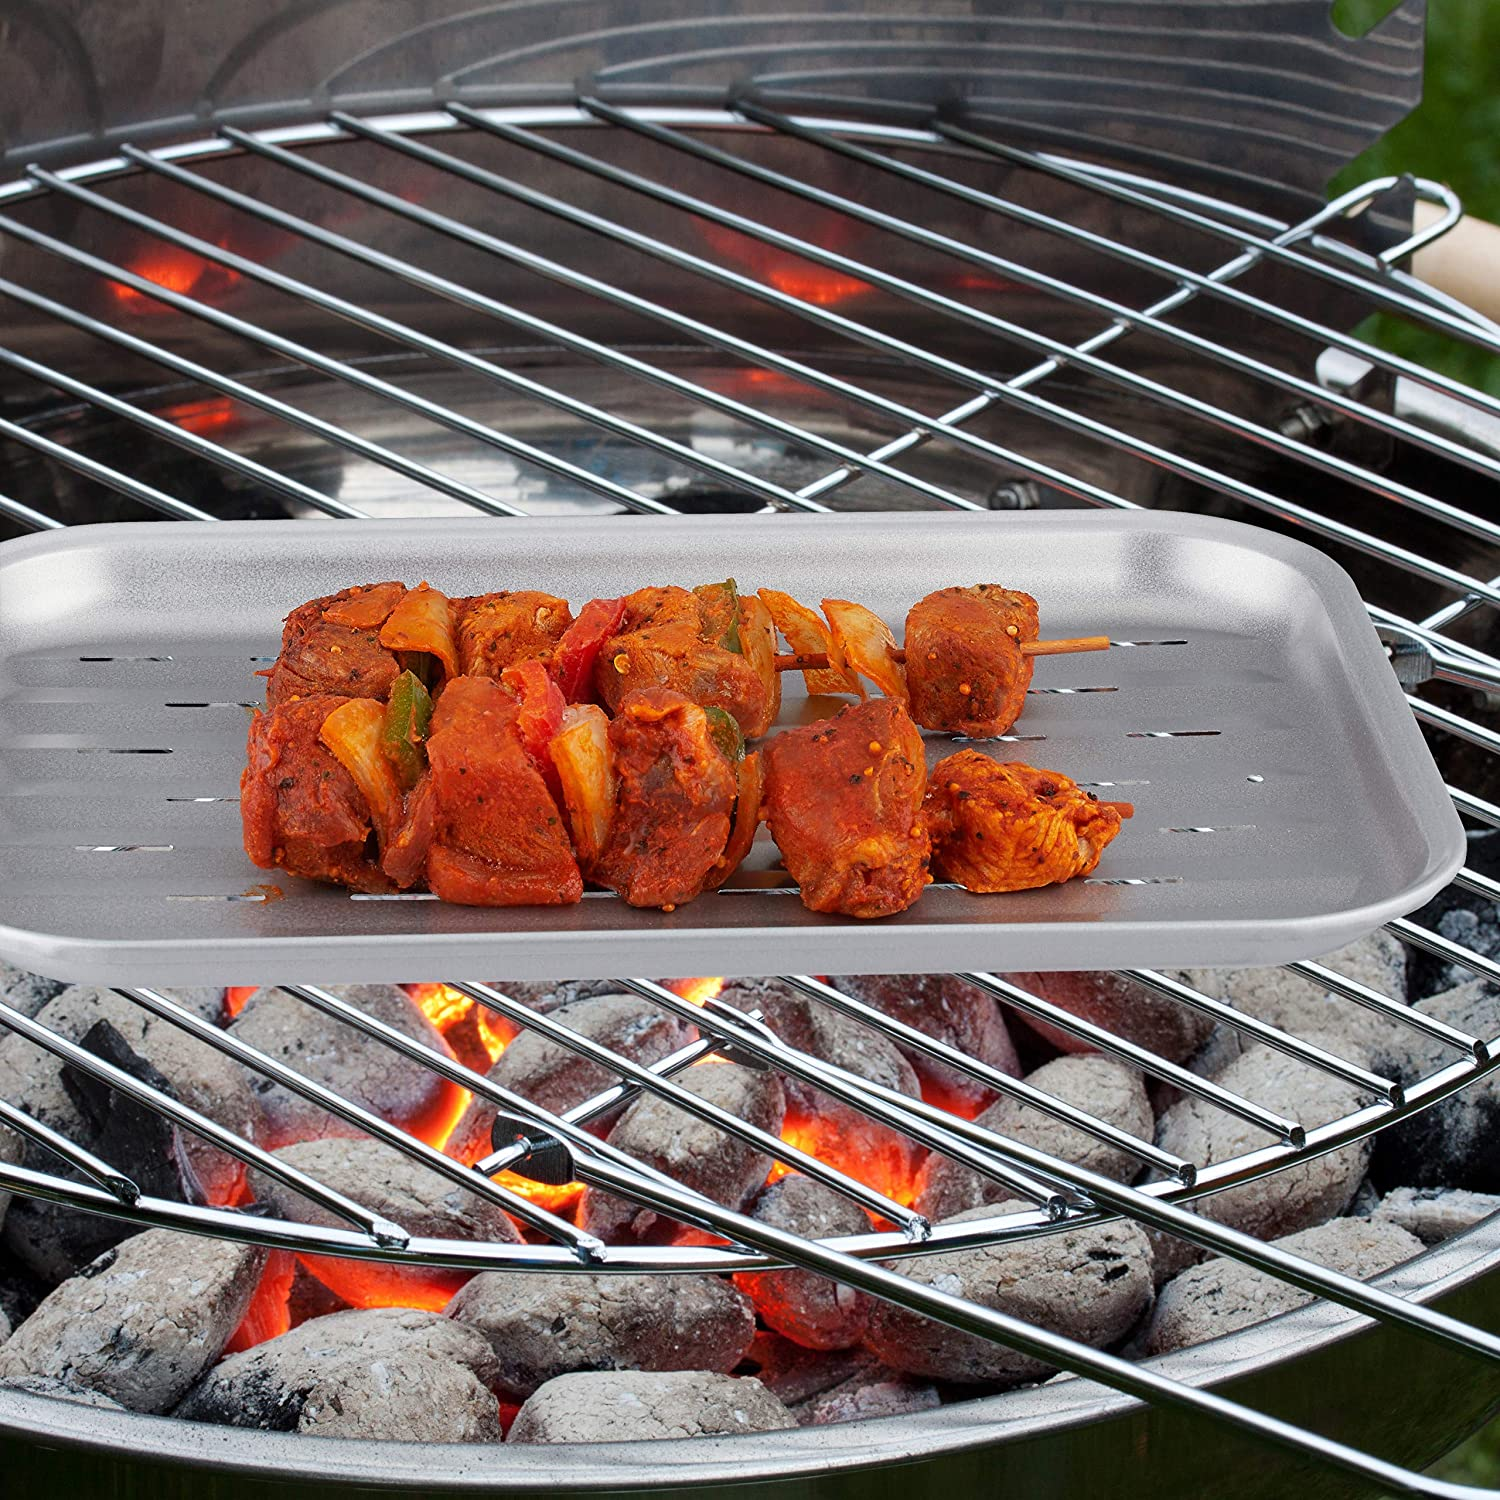 Vegetables Silver Relaxdays BBQ Pan Reusable Enjoy Barbeque Aroma Grill Tray Matt Brushed Stainless Steel